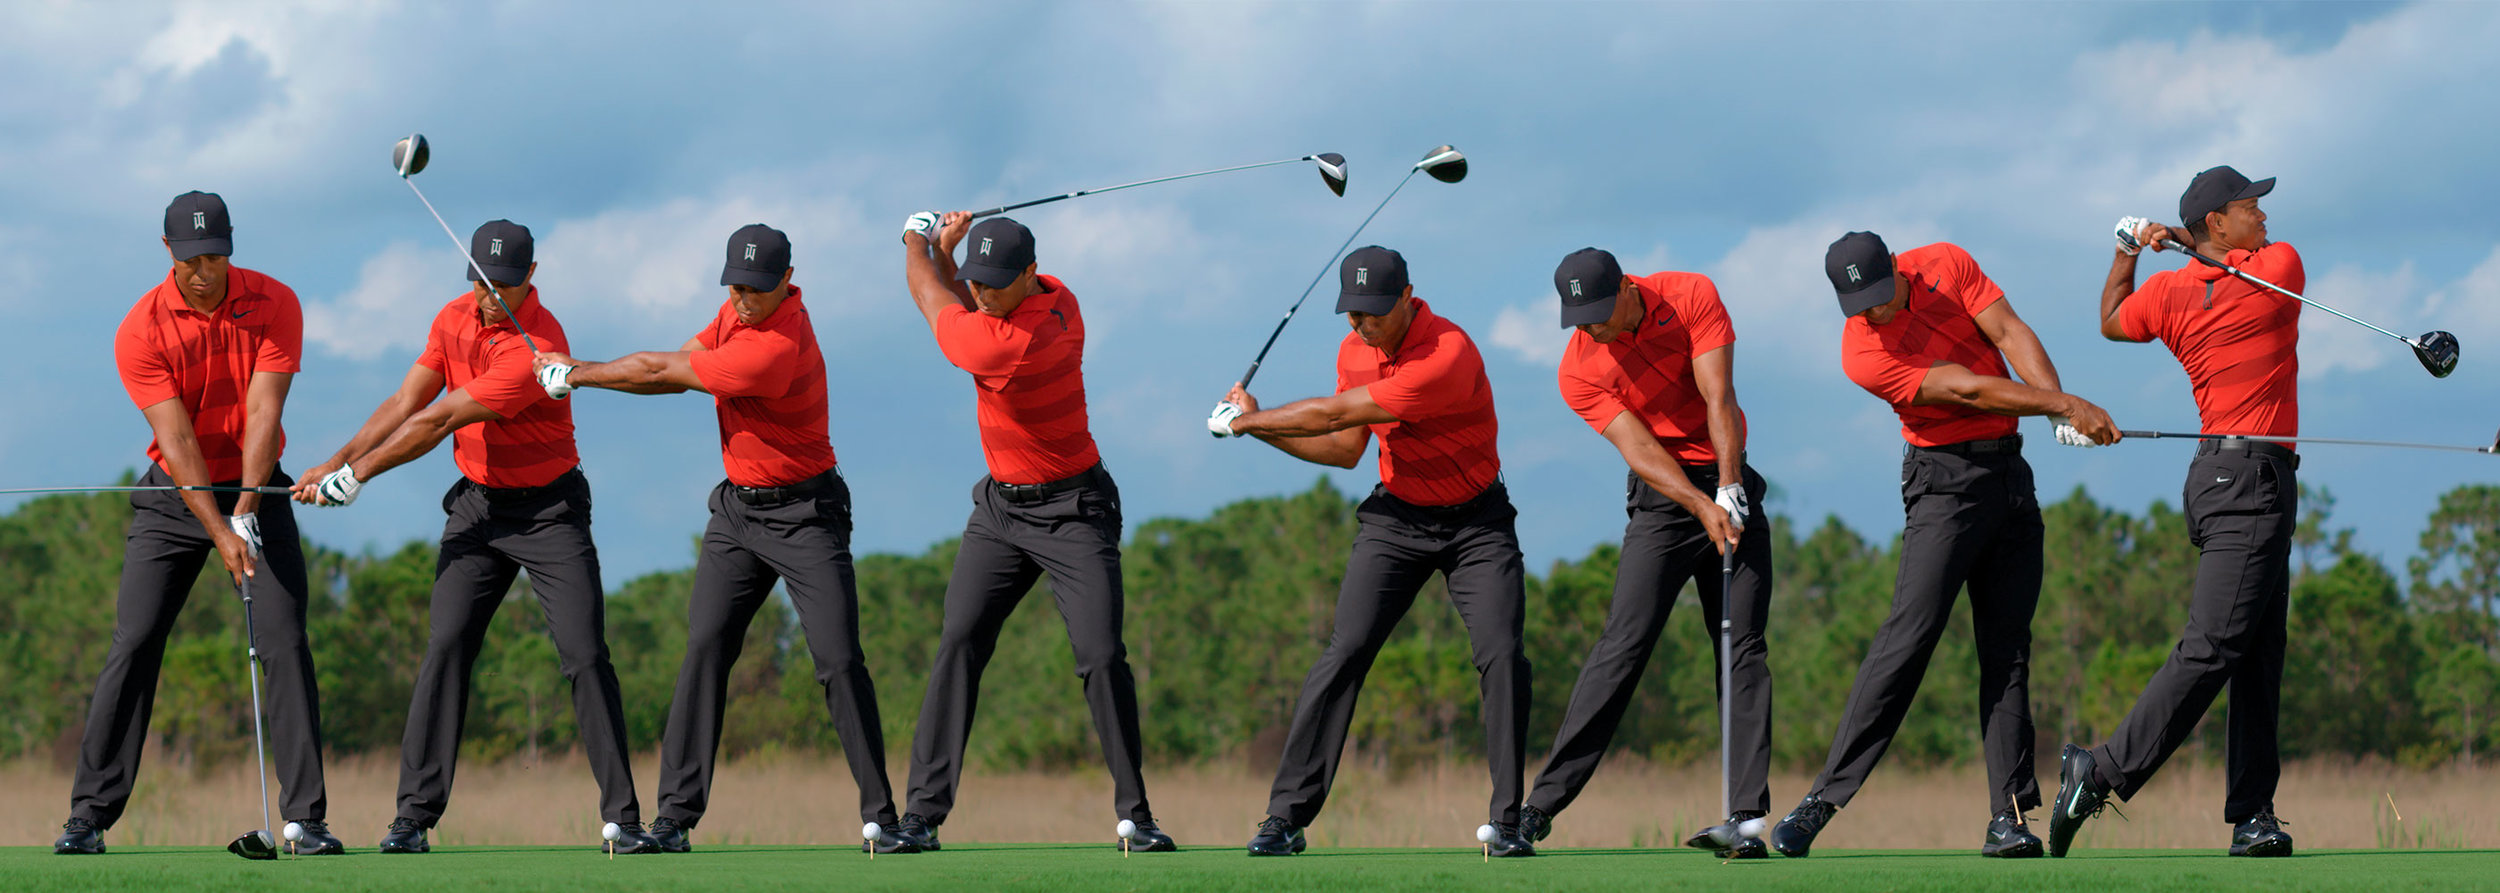 Swing_Sequence_Tiger_Woods_04.jpg